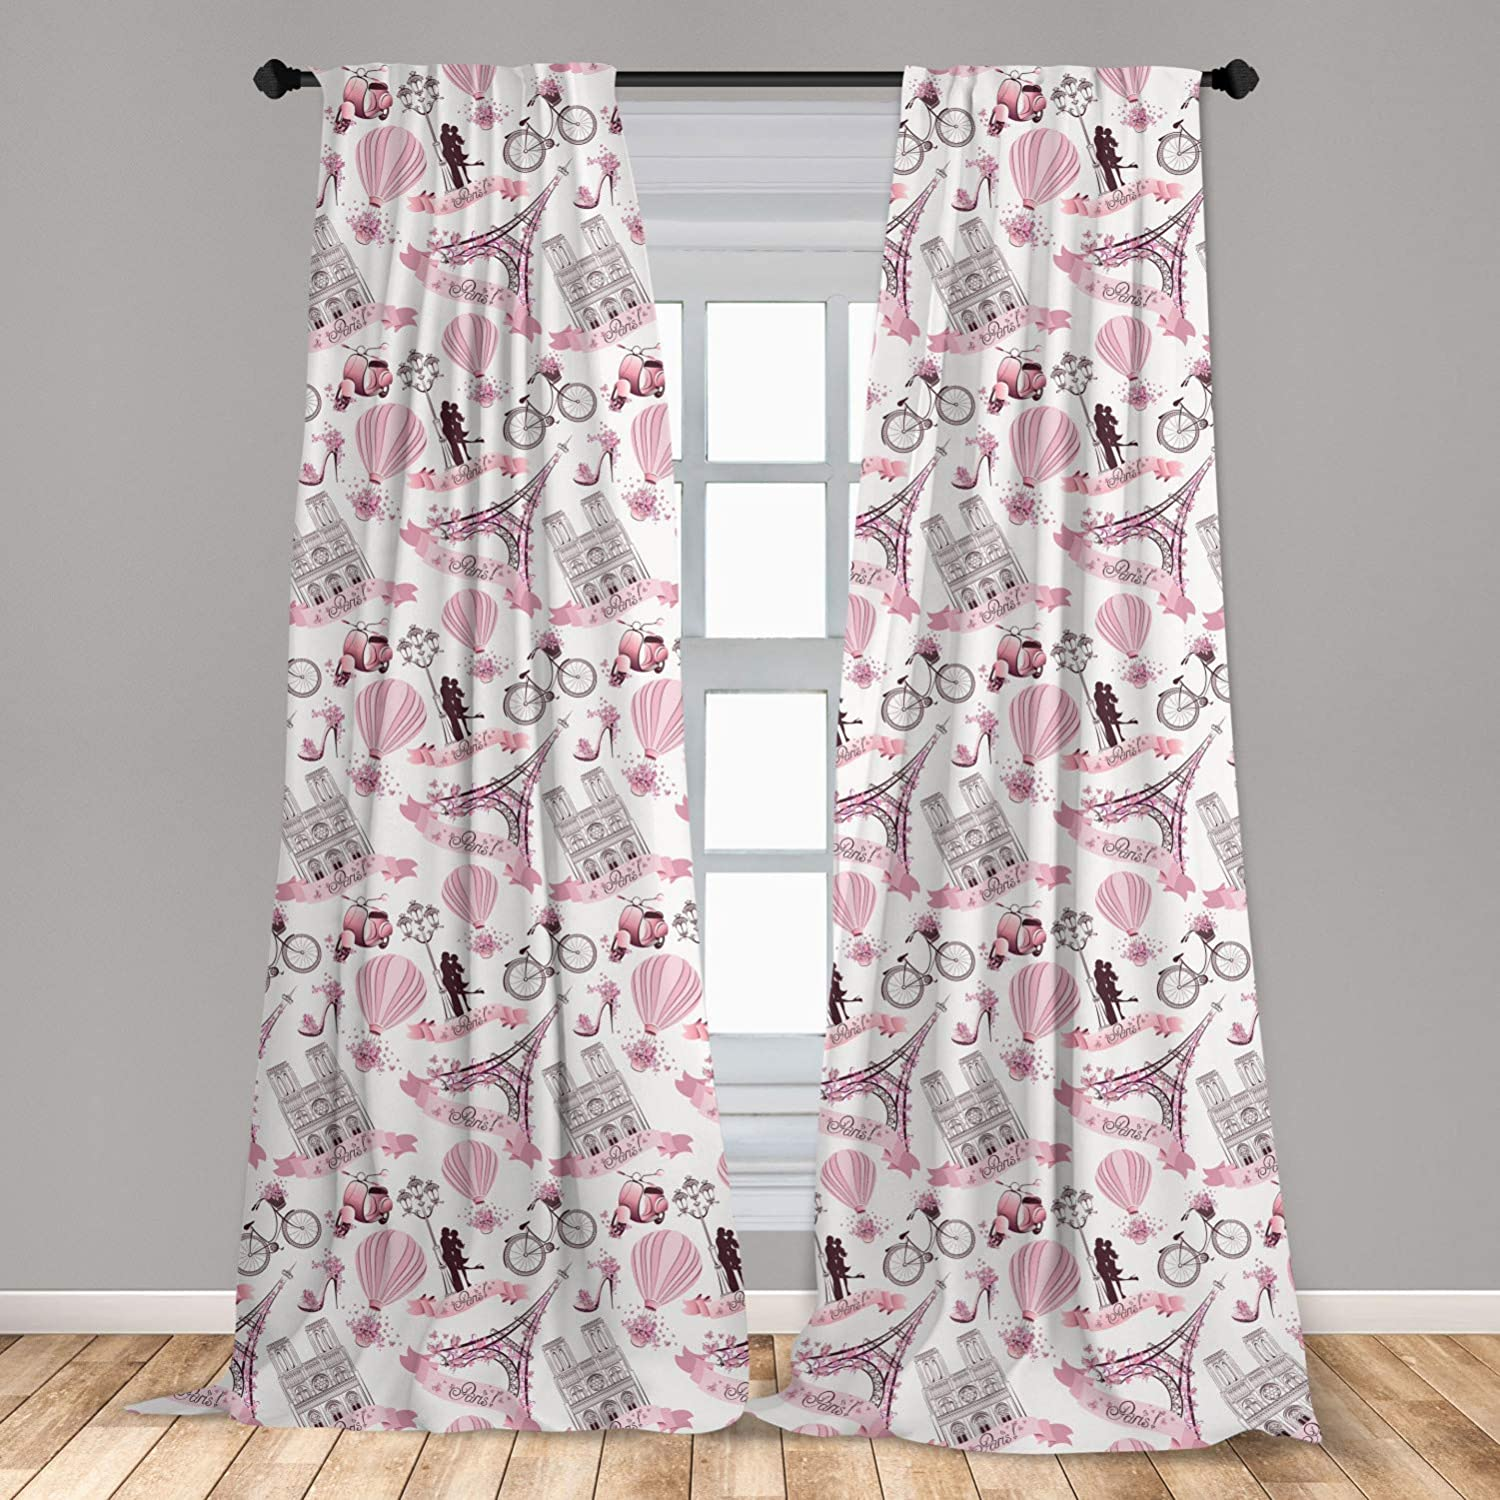 """Ambesonne Paris 2 Panel Curtain Set, Valentines Day Theme with Eiffel Kissing Couple Hot Air Balloon Wedding Concept, Lightweight Window Treatment Living Room Bedroom Decor, 56"""" x 63"""", Pink Rose"""